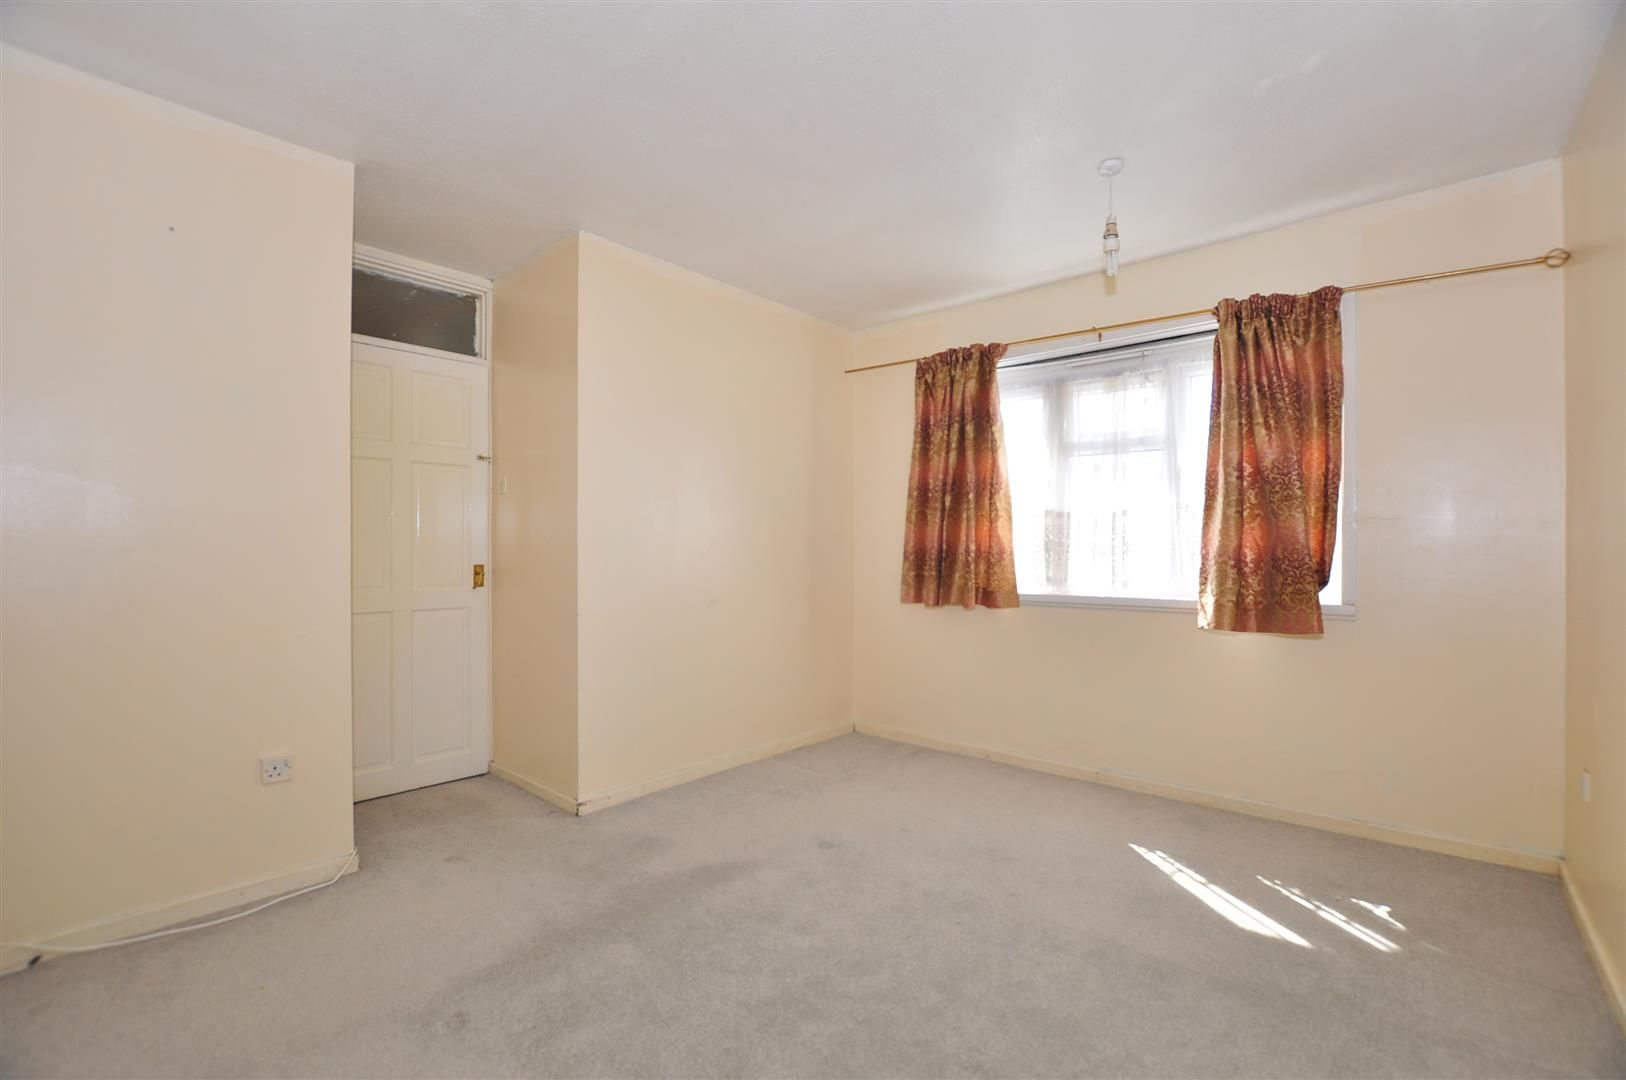 3 bed house for sale 8